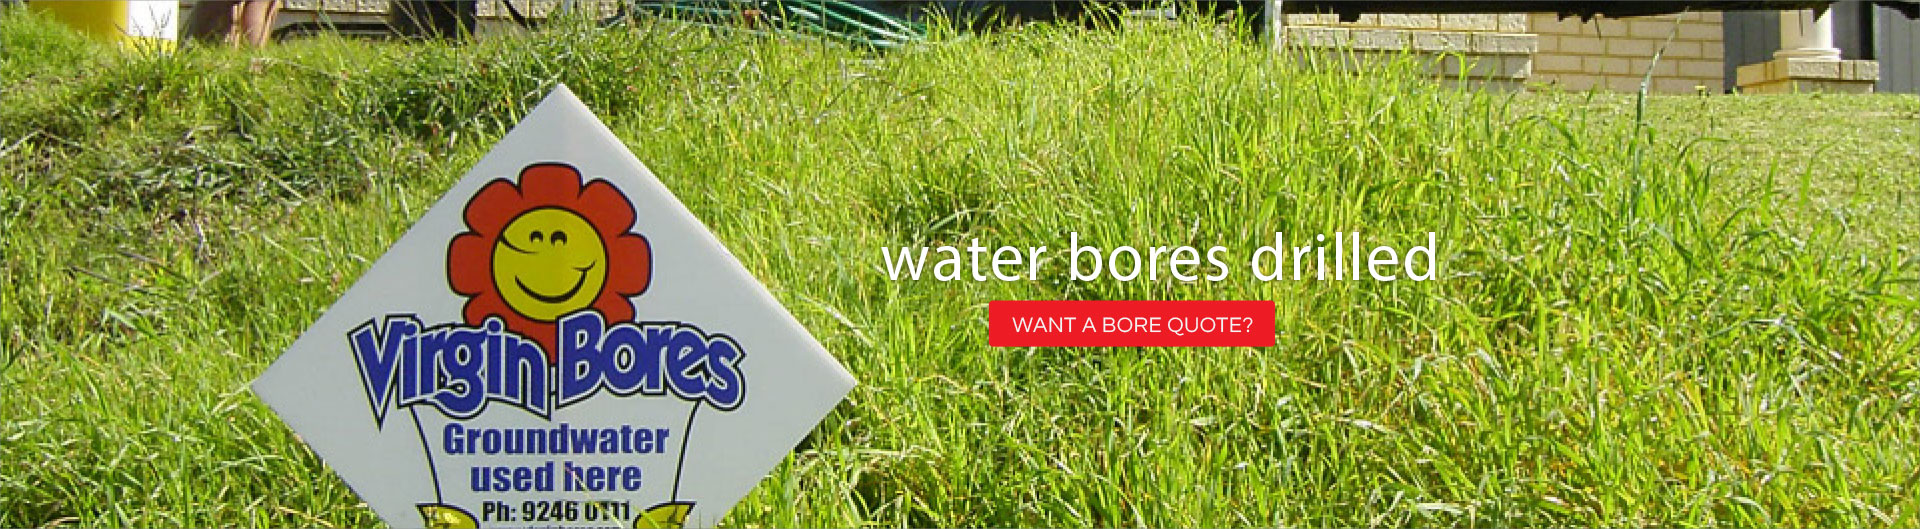 WANT A BORE QUOTE?